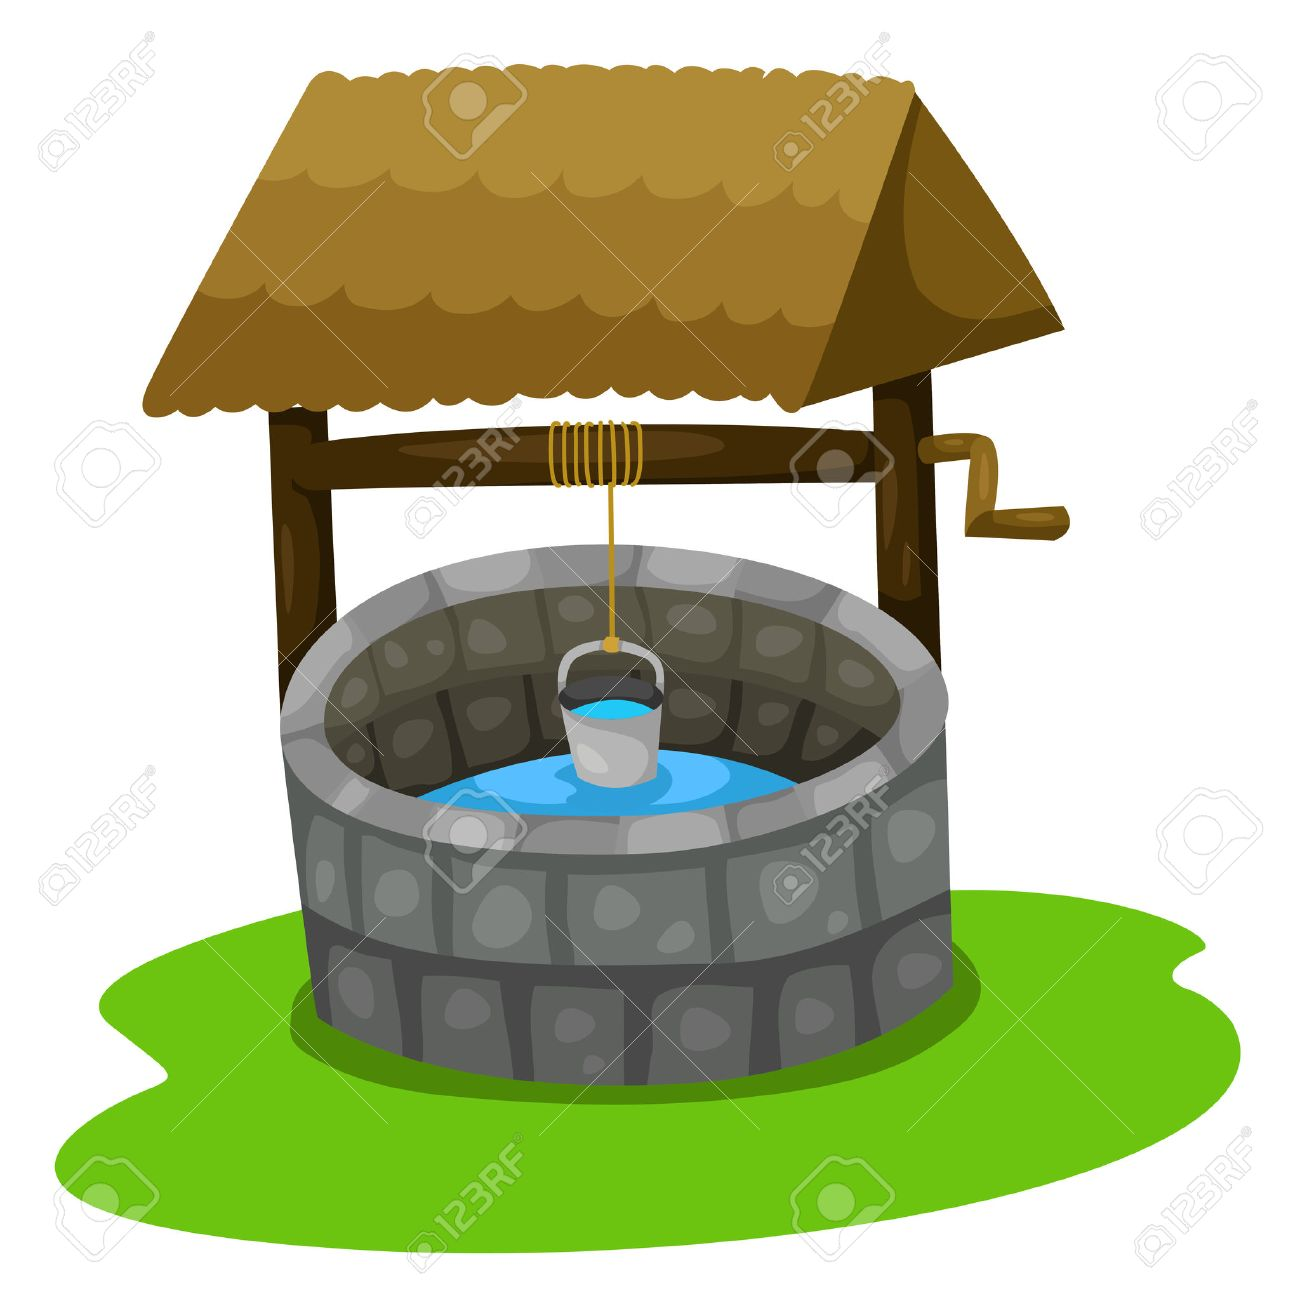 Wishing well clipart 3 » Clipart Station.